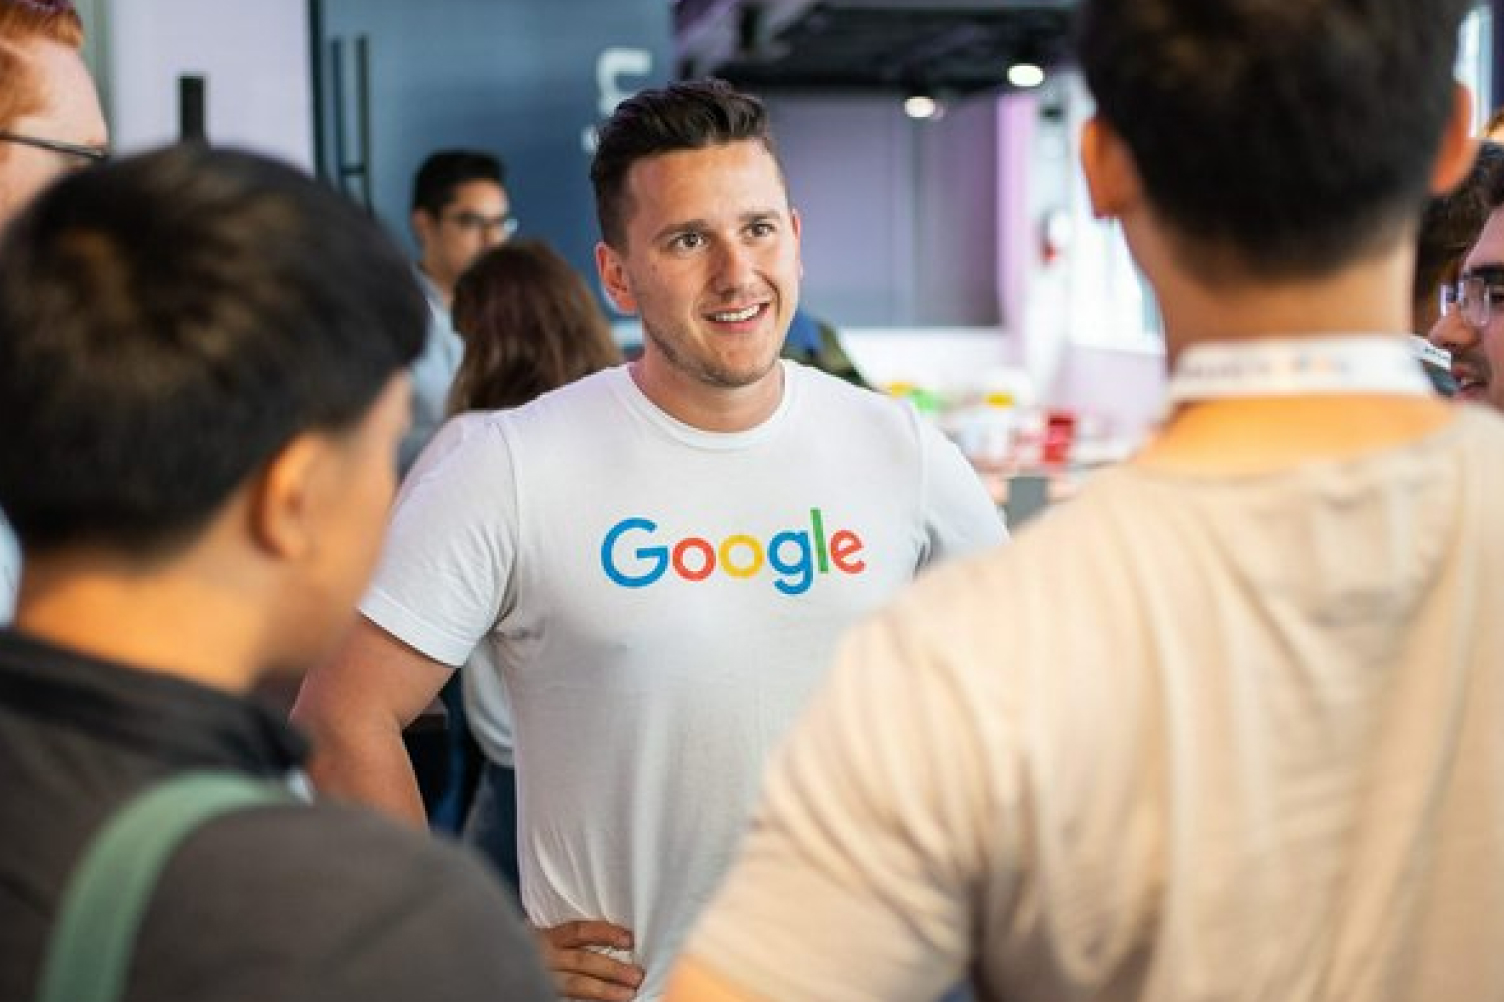 Man wearing a Google tshirt talking to a group of people.